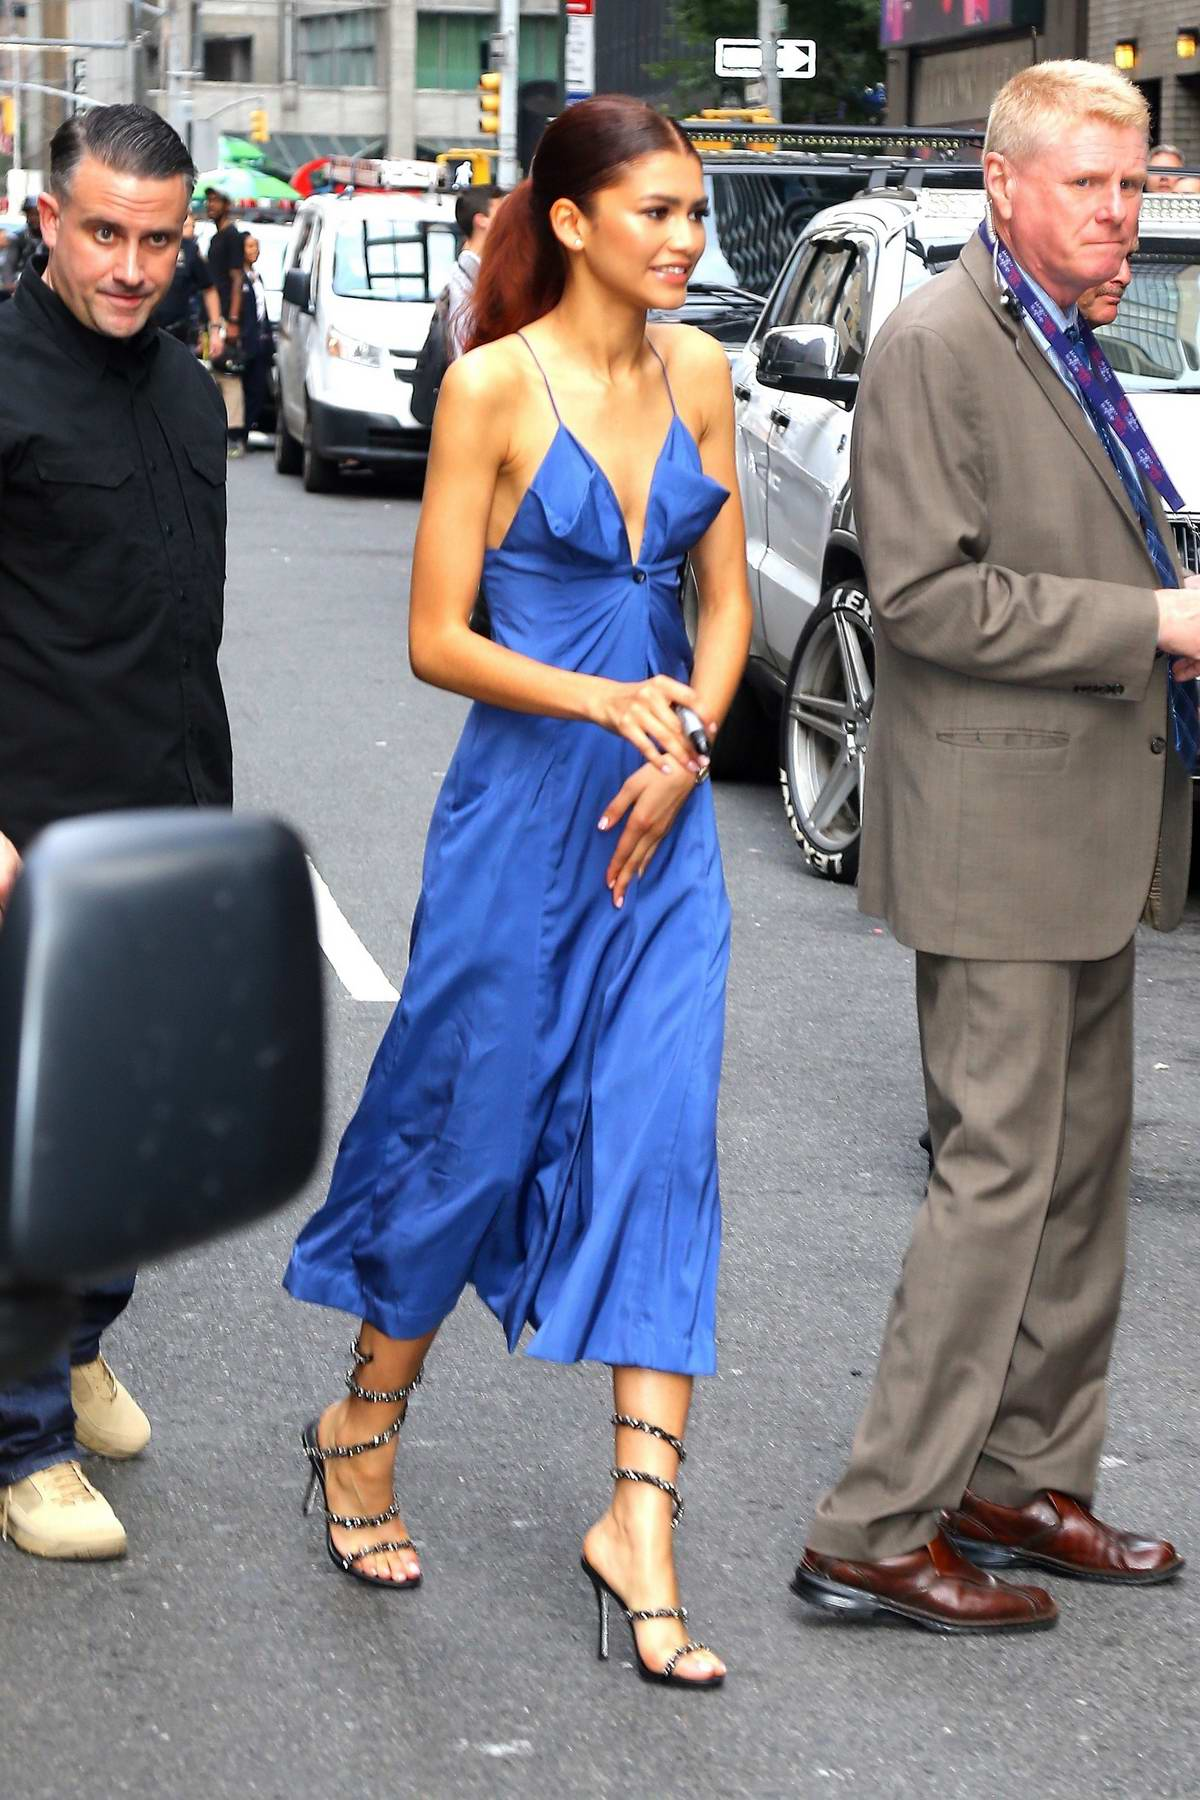 Zendaya seen wearing a blue dress as she leaves 'The Late Show with Stephen Colbert' in New York City